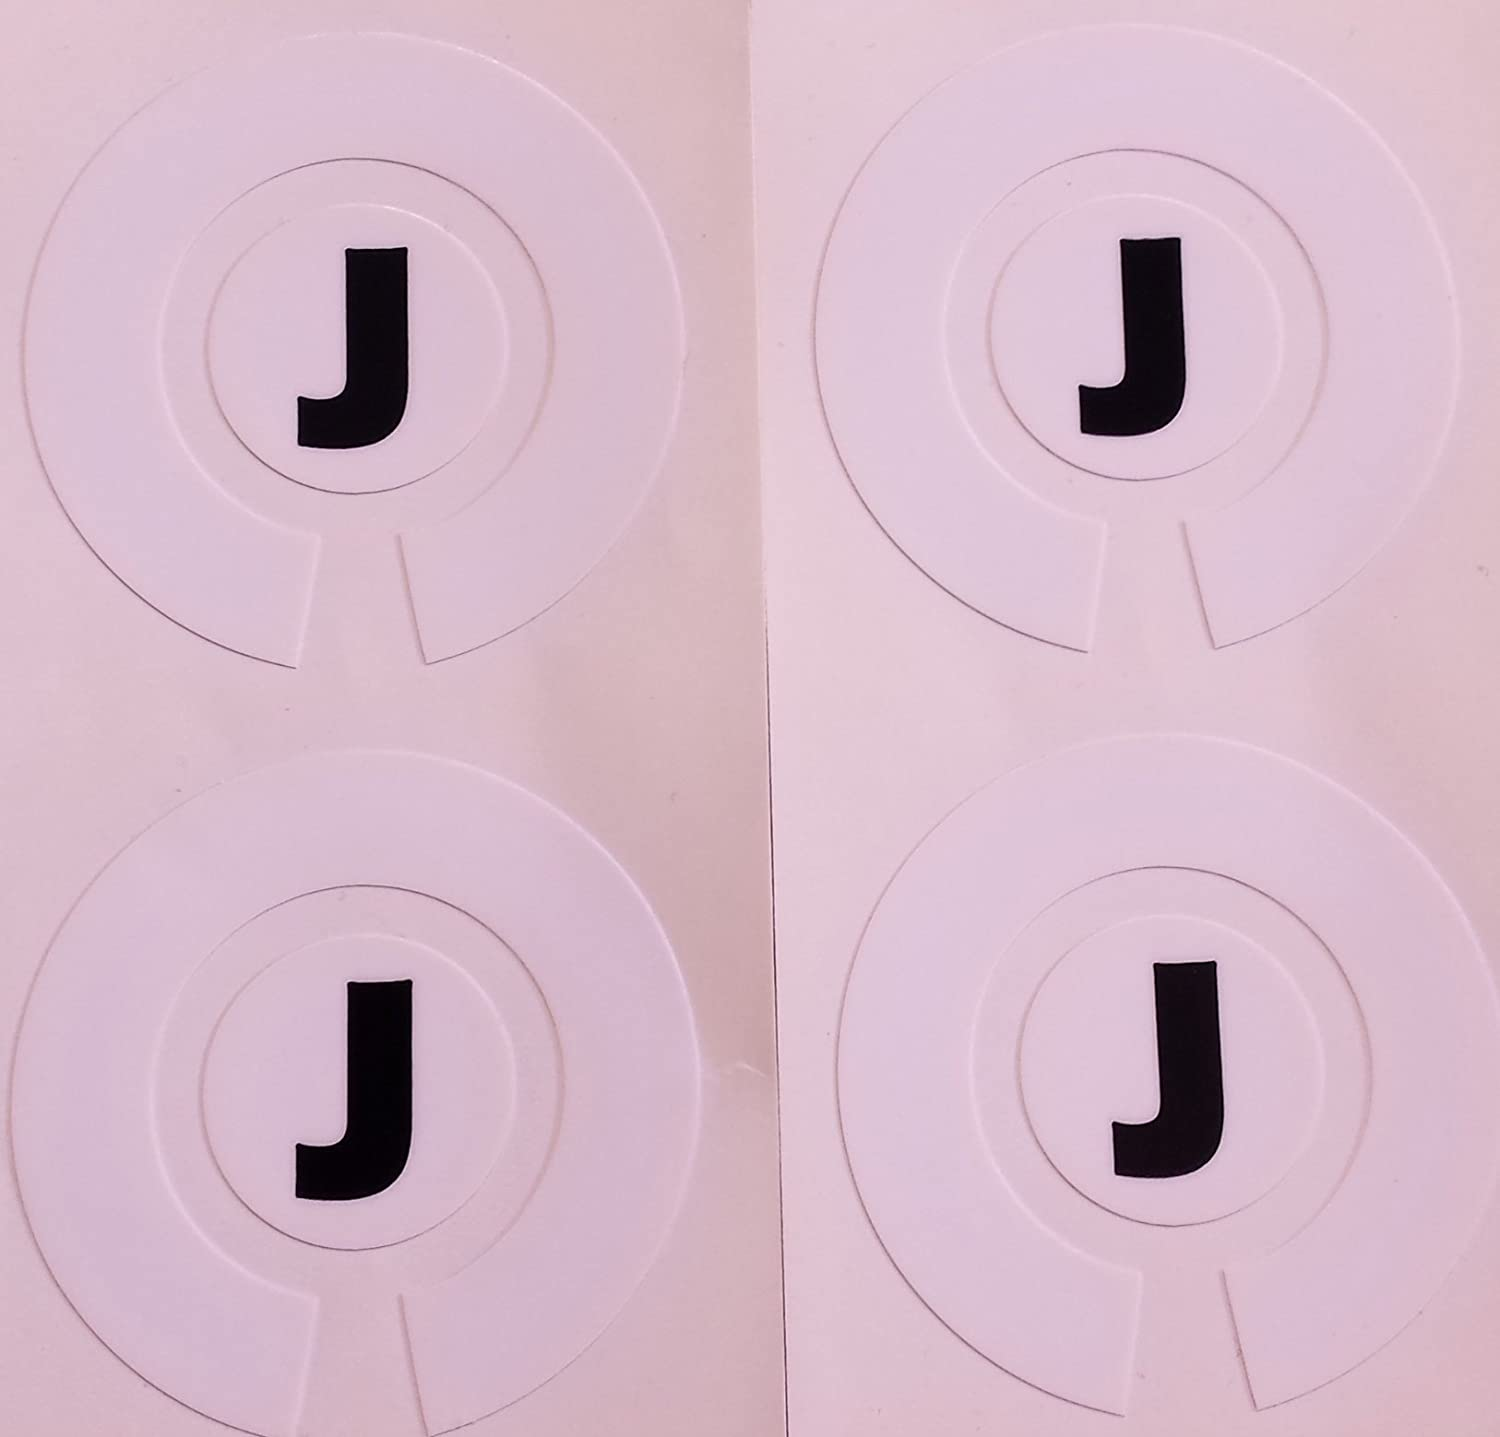 Crown Green Lawn Indoor Bowls Adhesive Lettered Coloured Marker Labels Set of 4 (White, J)